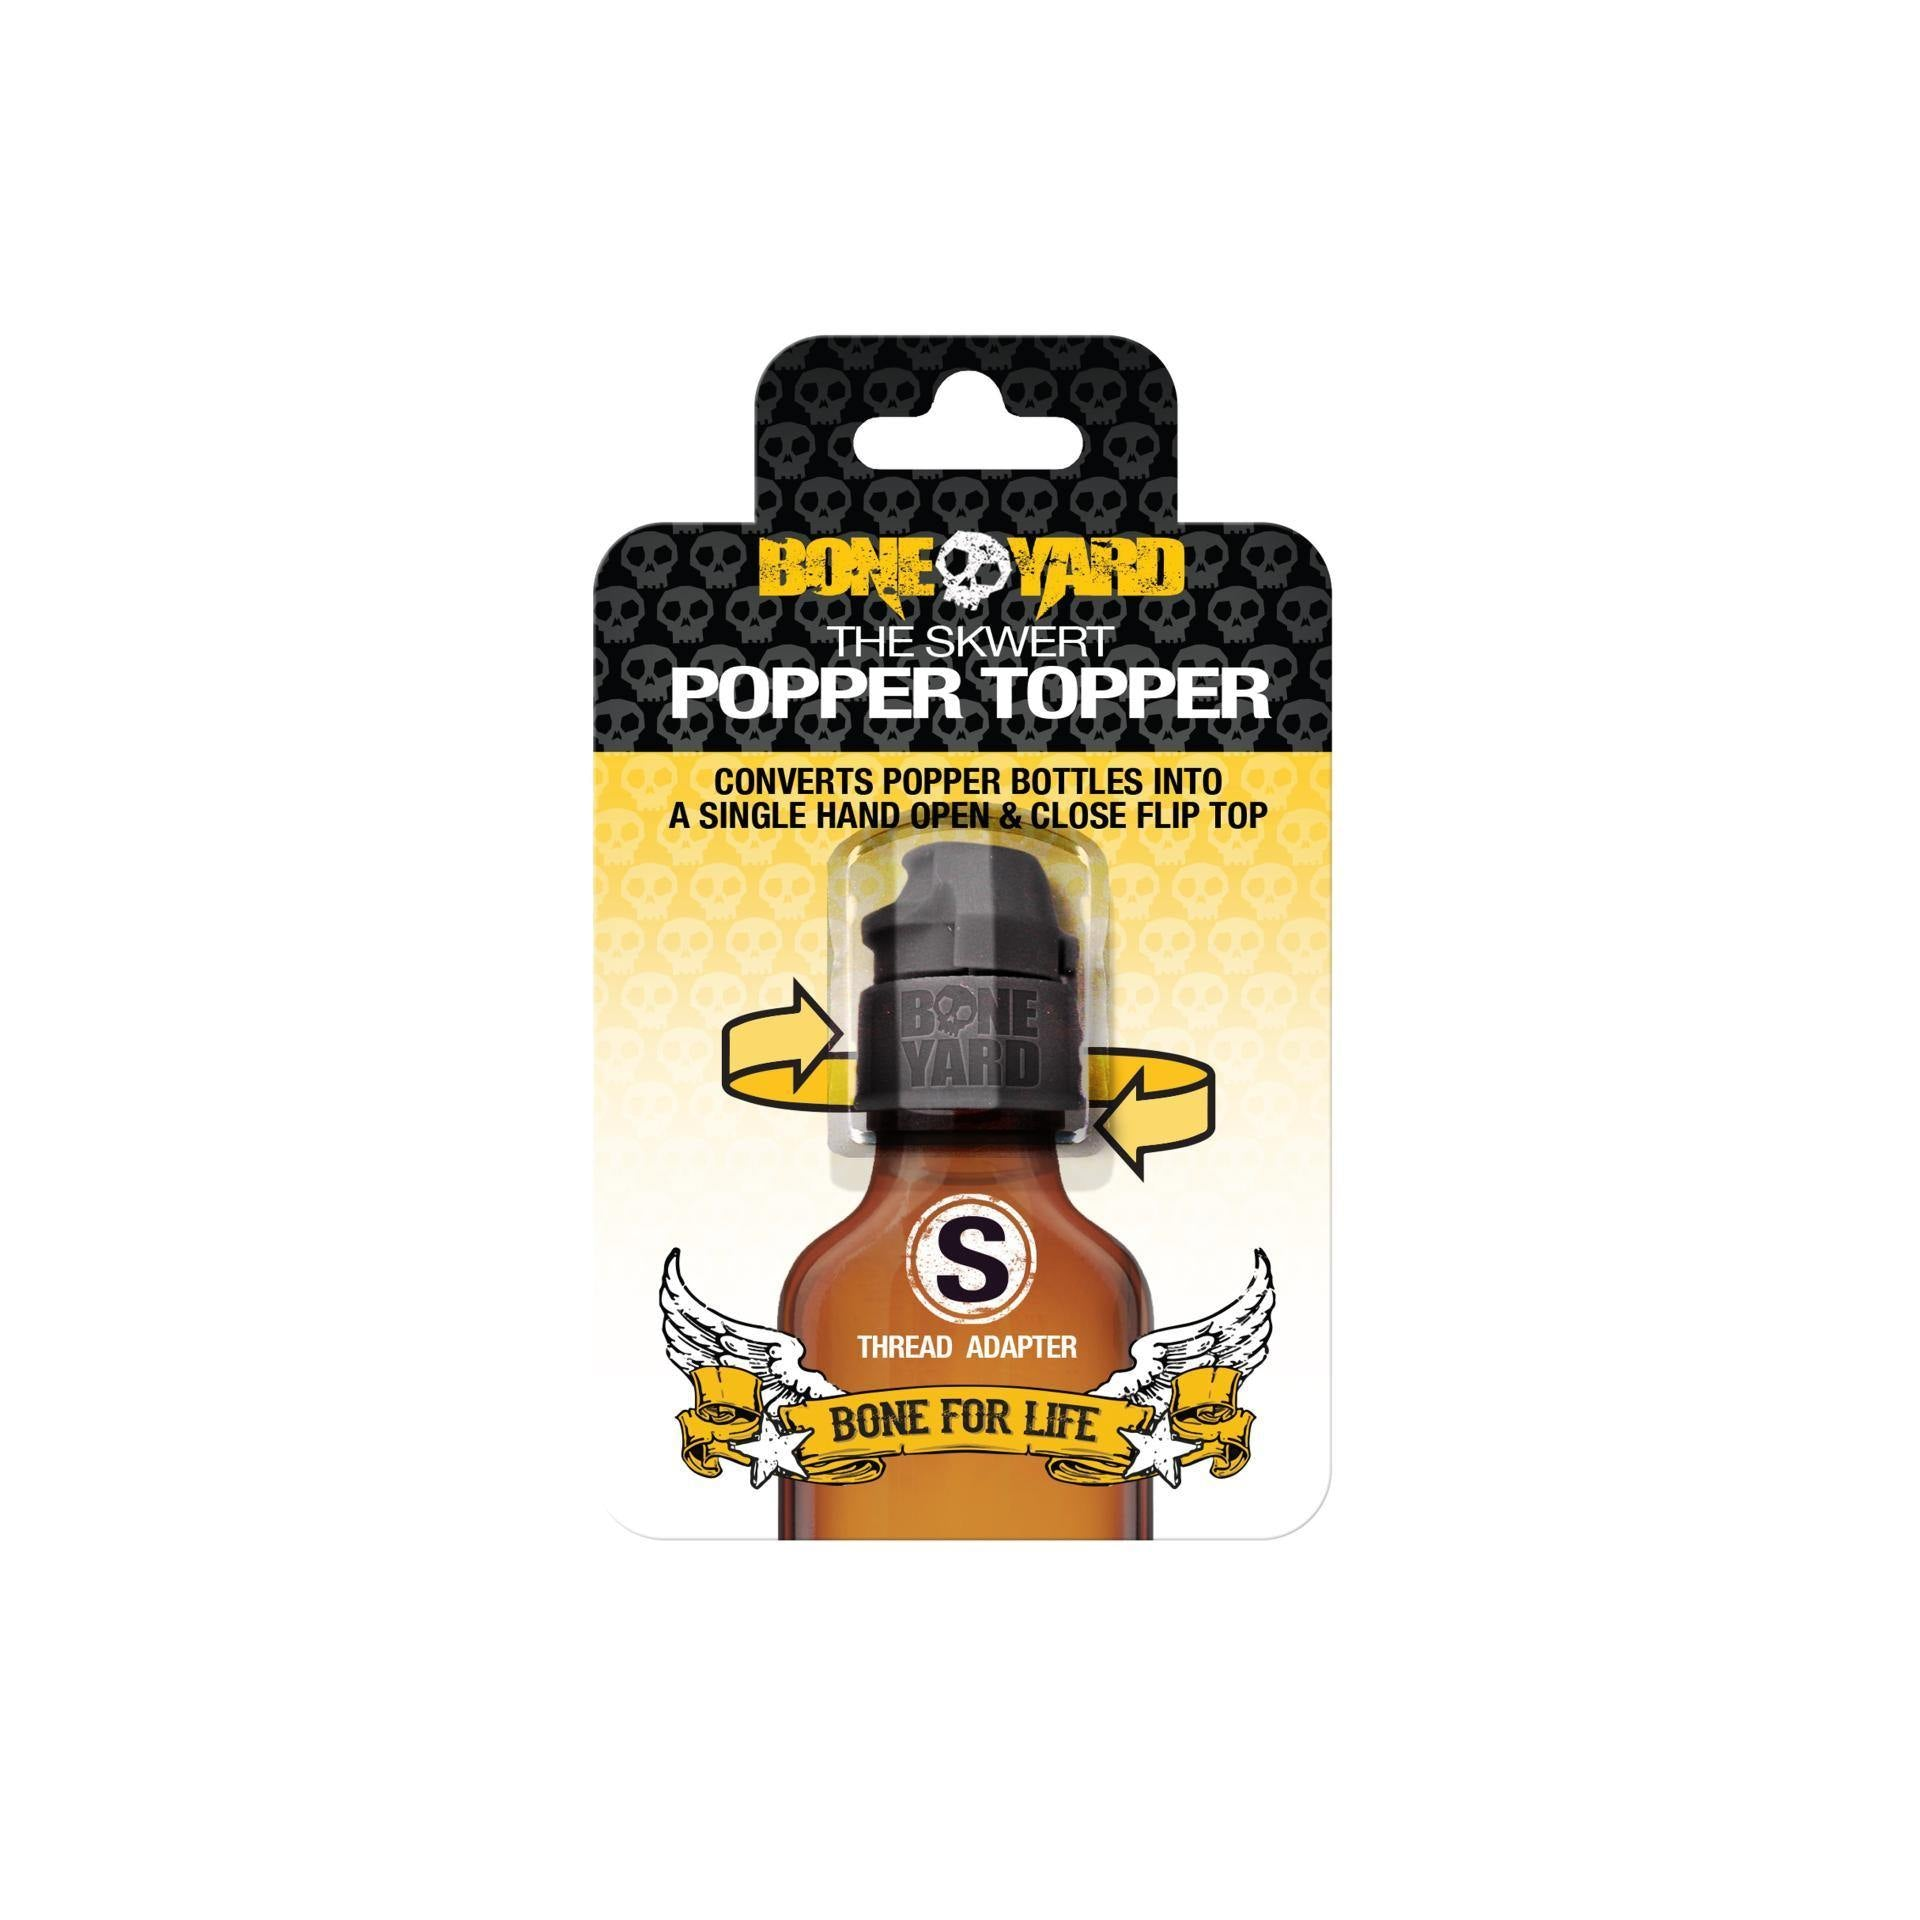 Skwert Popper Topper (small thread) - C1RB2B